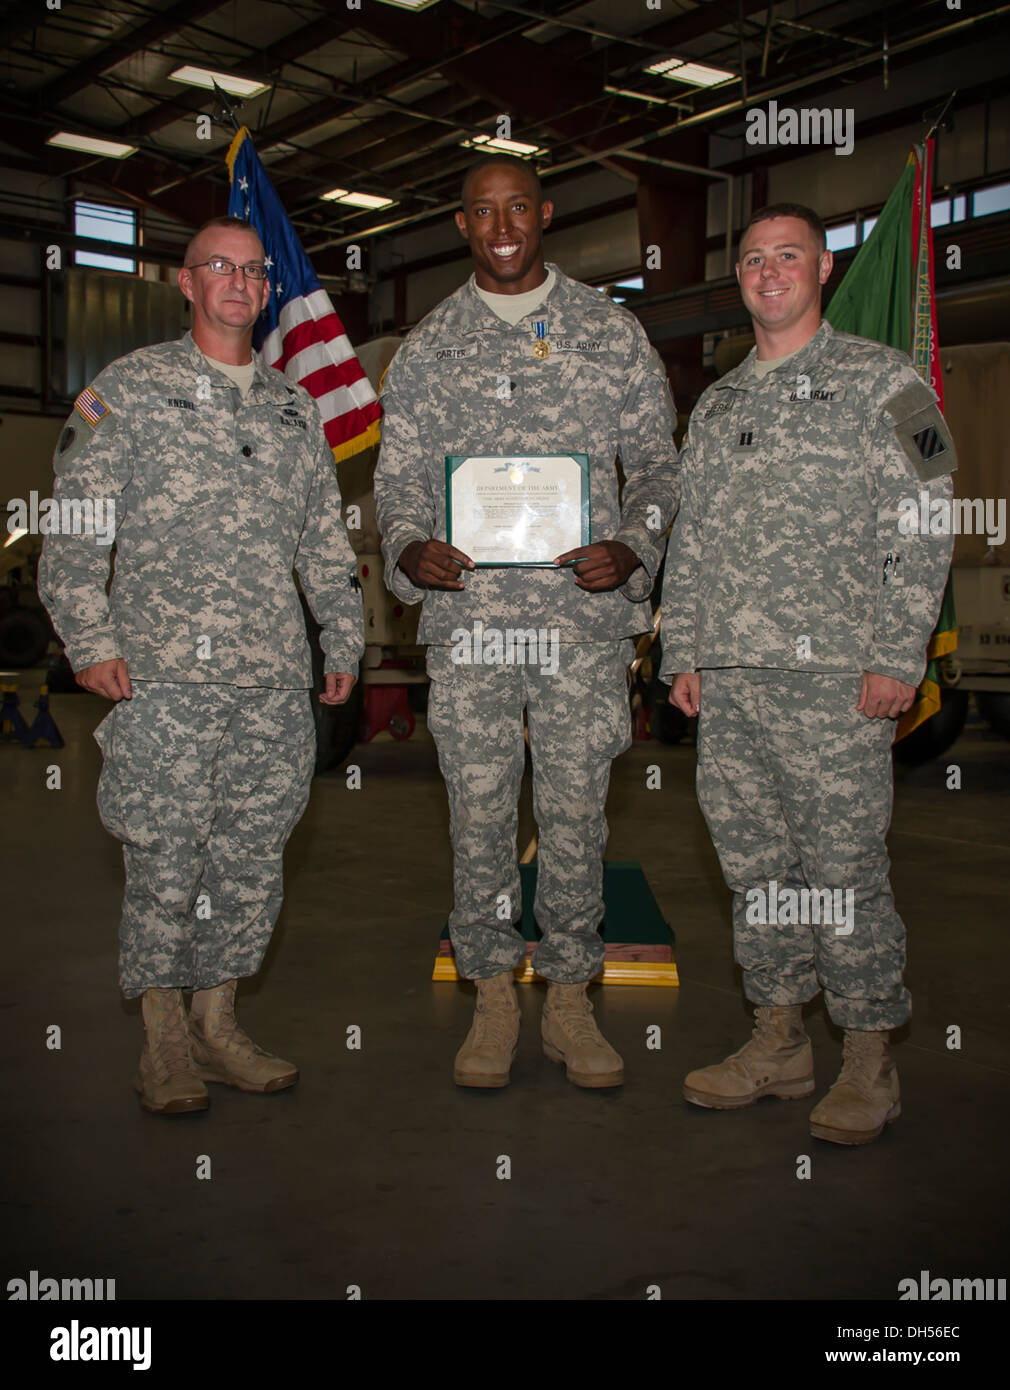 Lt. Col. Rodger Knedel (left), commander, 2-3 Brigade Special Troops Battalion 'Titans', 2nd Armored Brigade Combat Team, 3rd Infantry Division, and Capt. Michael Peters, a company commander for 2-3 BSTB, have a picture taken with Spc. Marquise Carter, mi - Stock Image